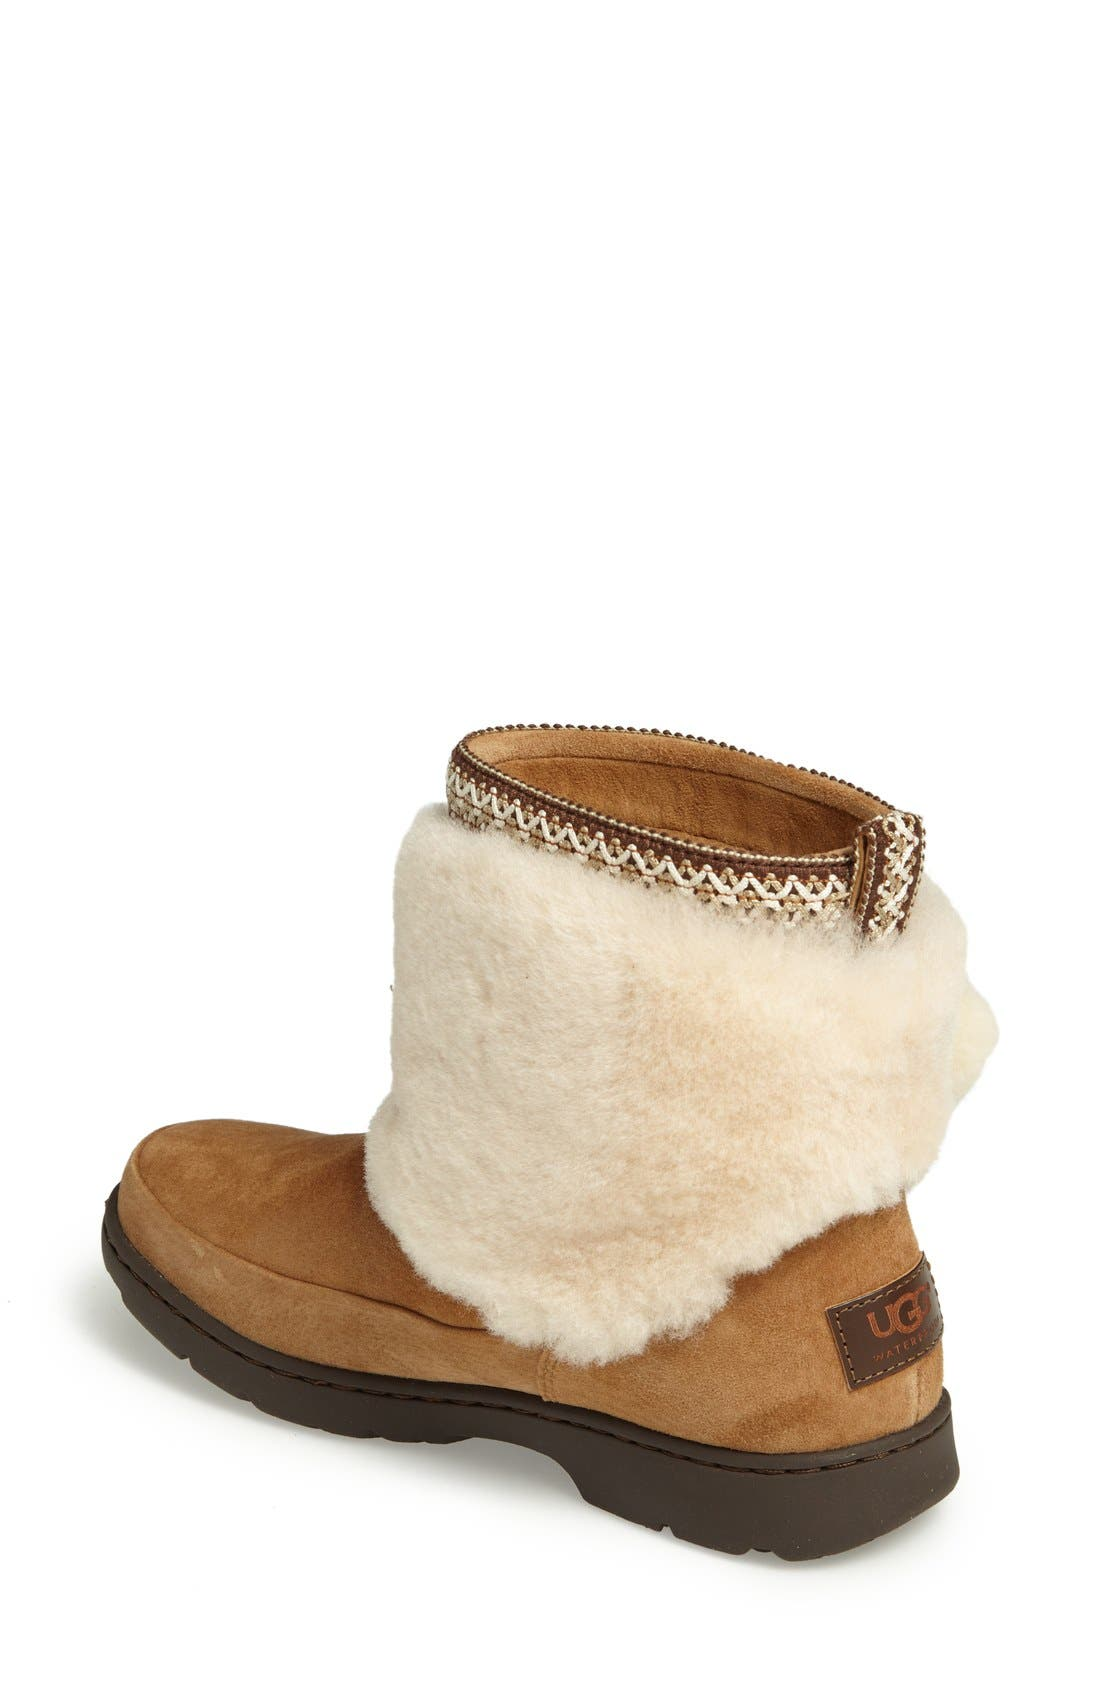 Alternate Image 2  - UGG® Brie Genuine Shearling Waterproof Bootie (Women)